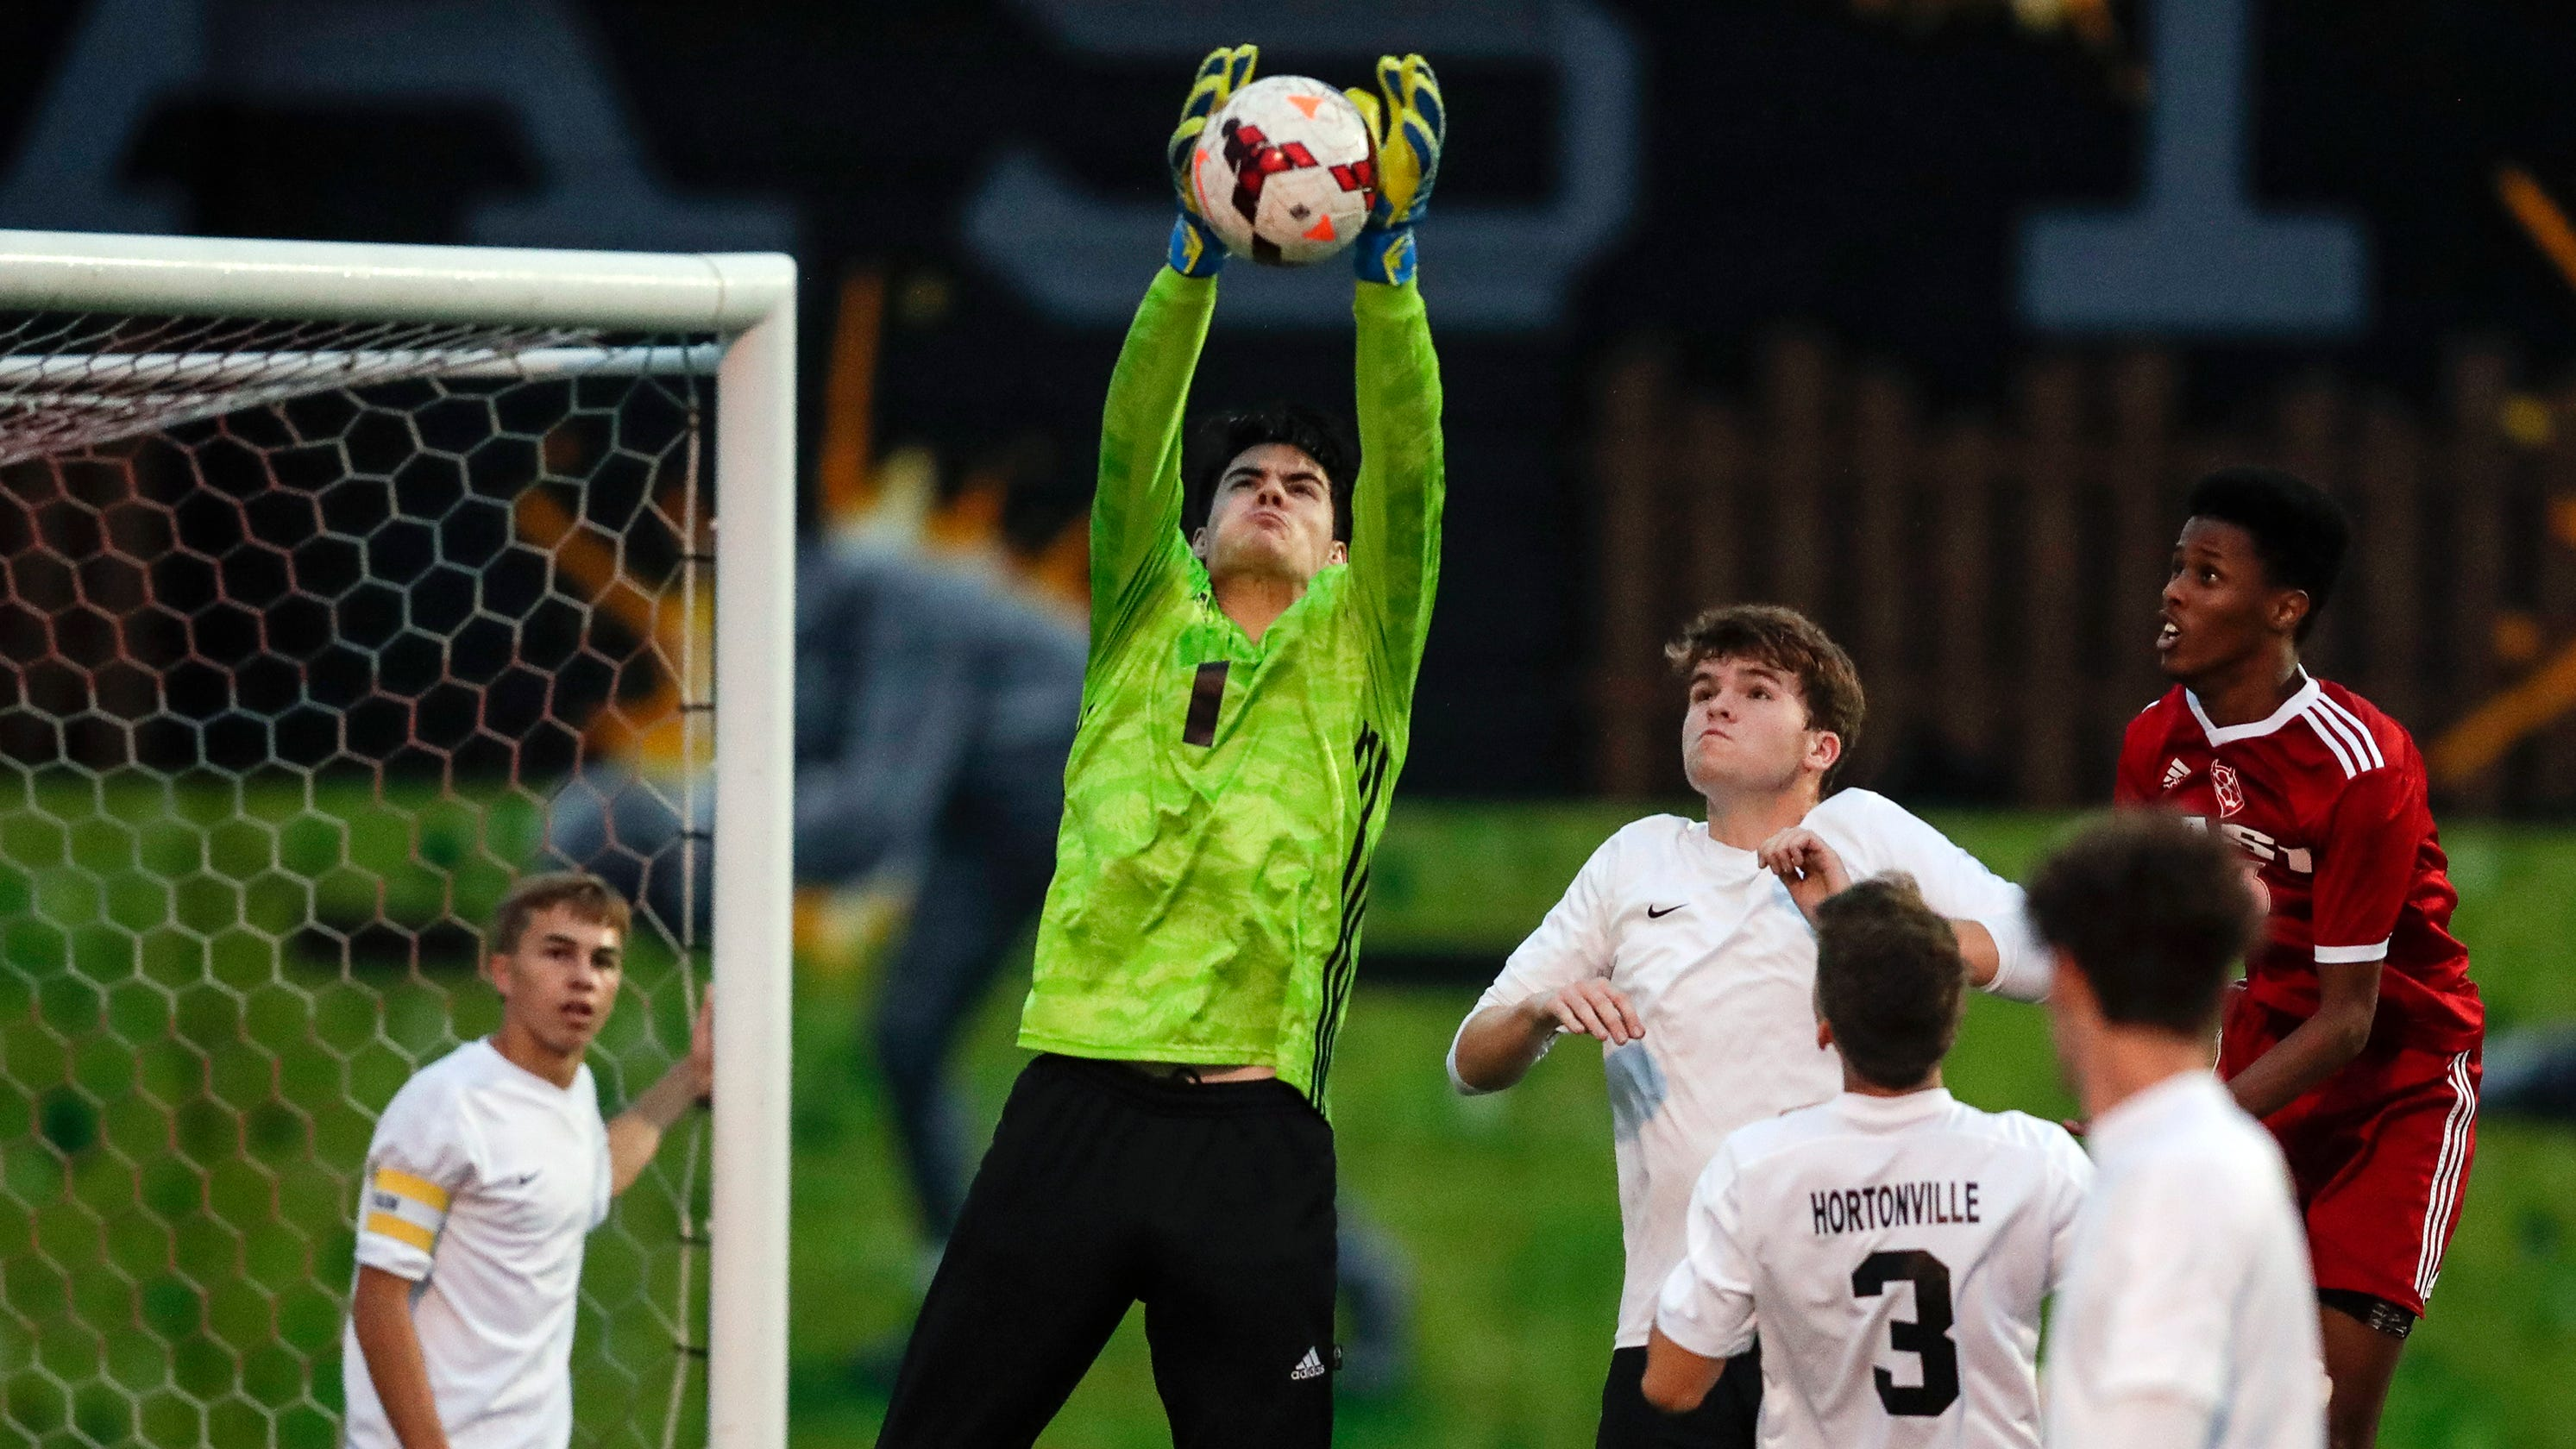 High school: Thursday's sports results